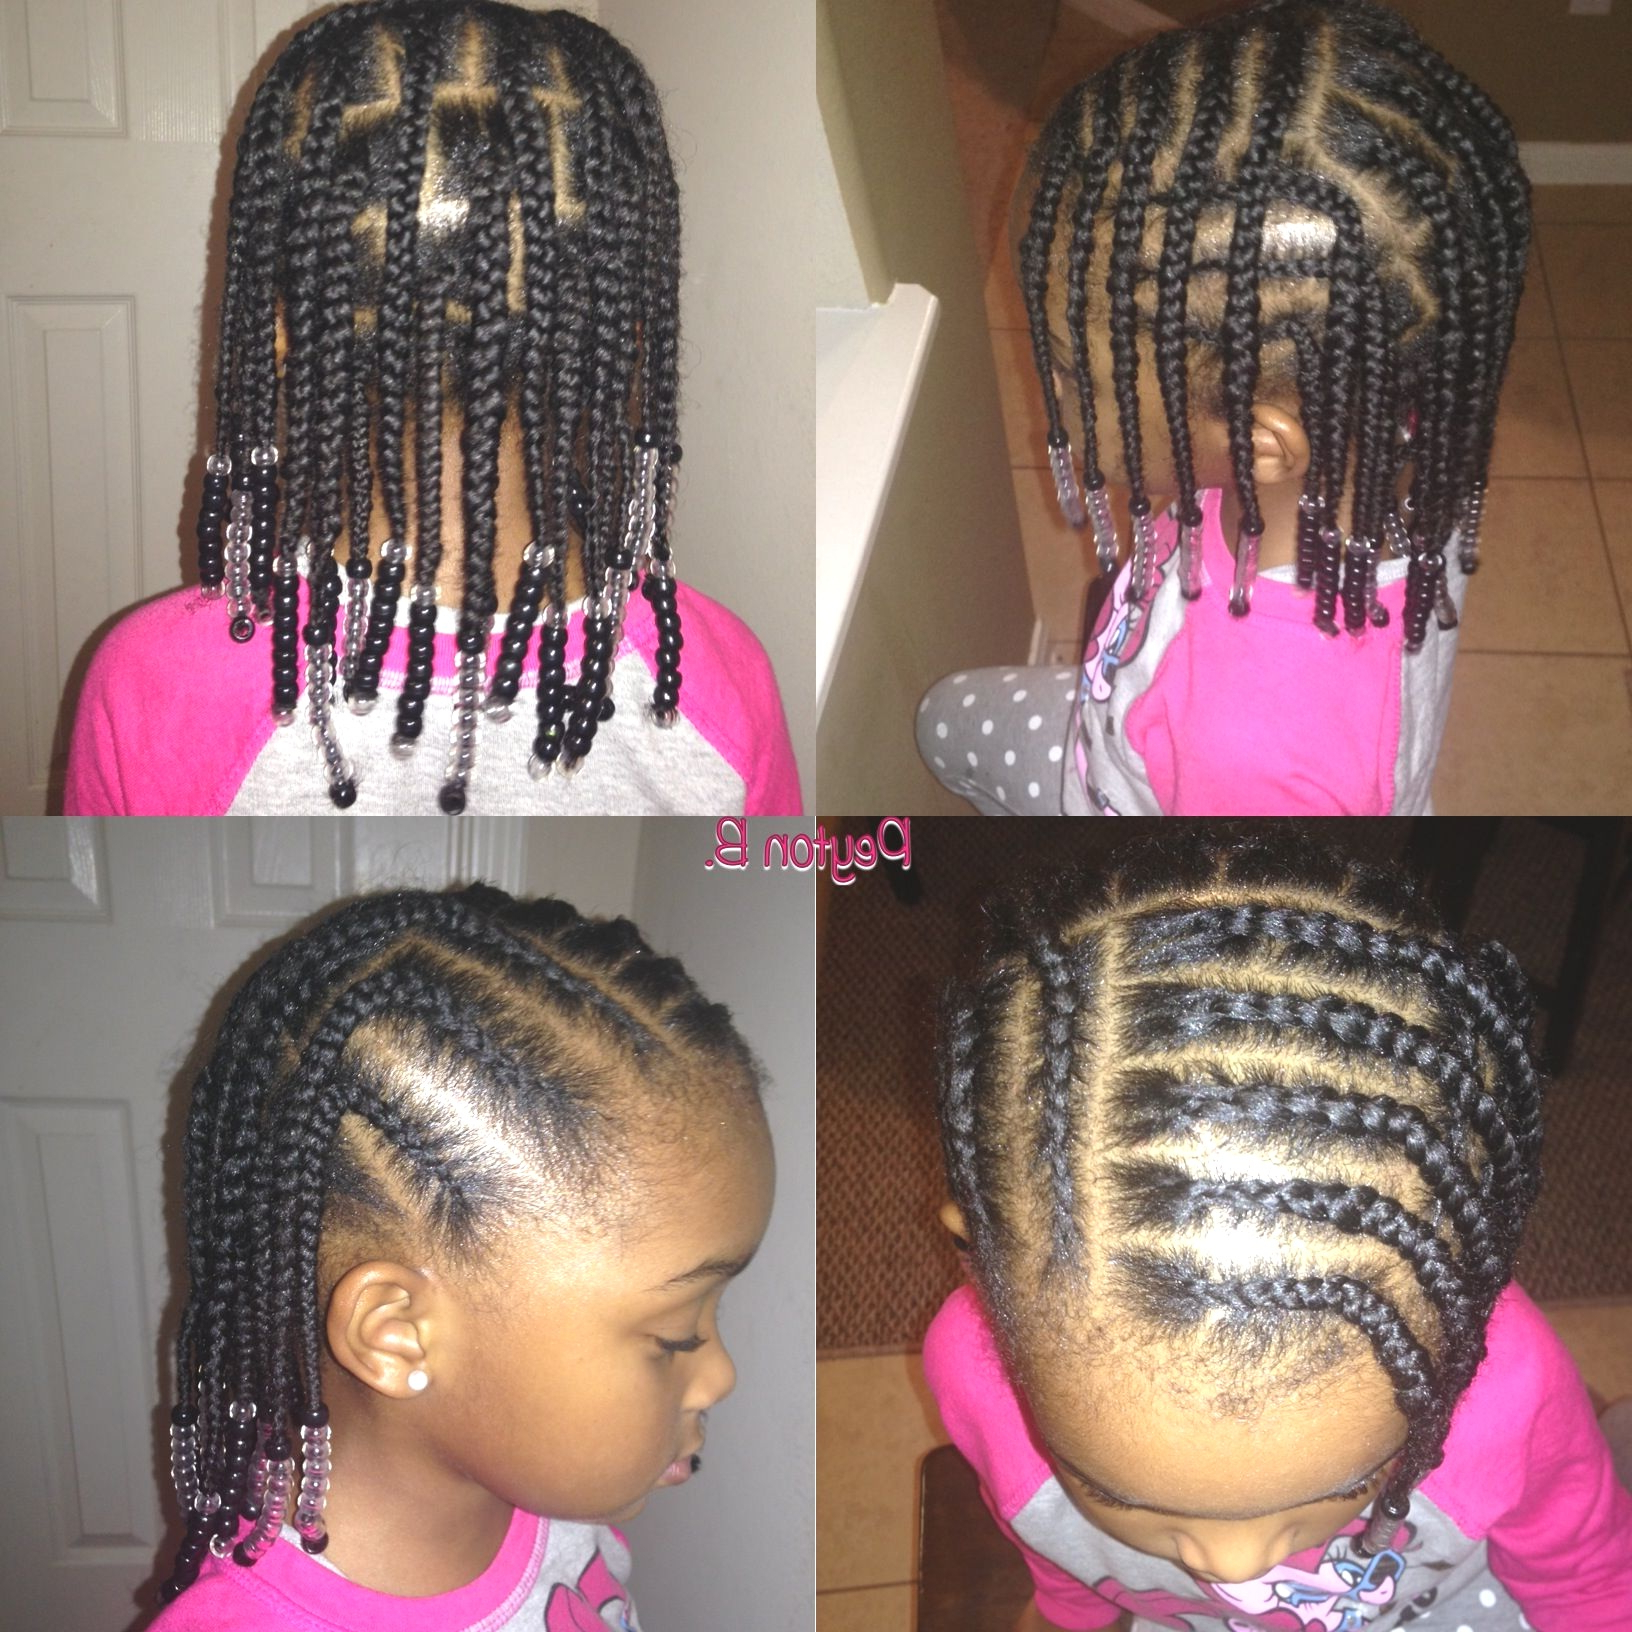 2020 Box Braids And Beads Hairstyles Inside Hairstyles : Natural Braided Hairstyles For Kids Super Box (View 16 of 20)